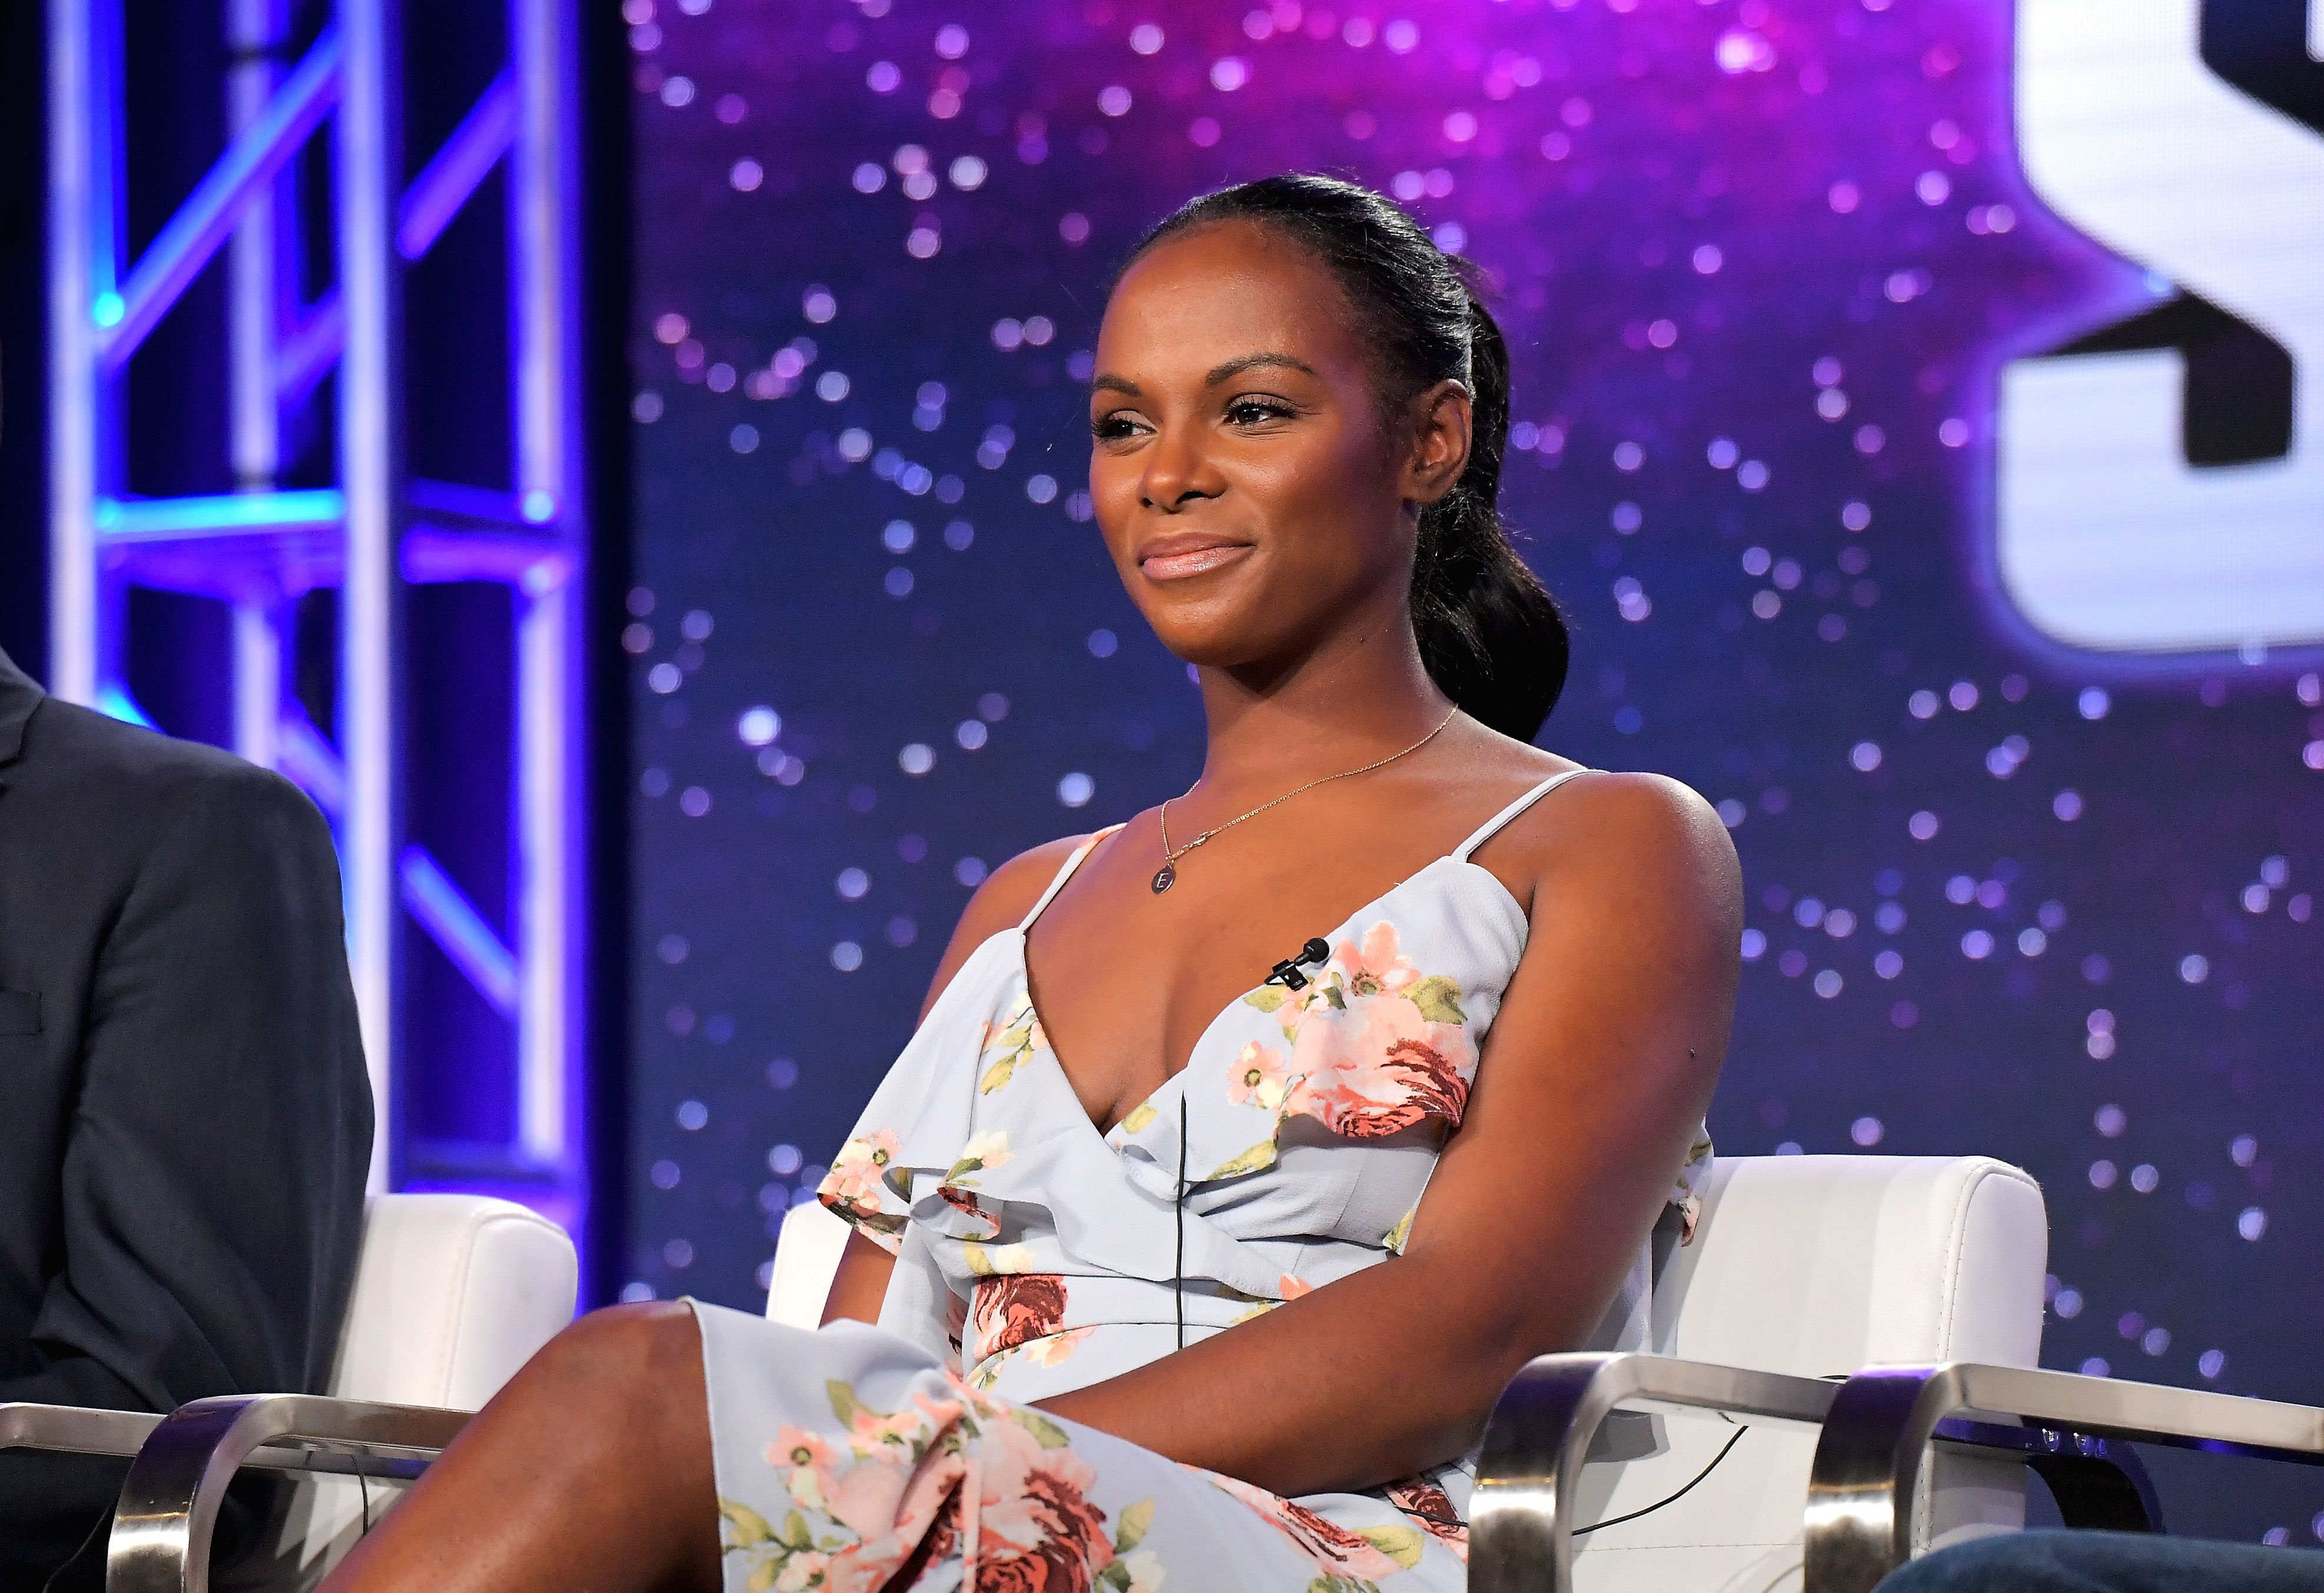 Tika Sumpter during the TCA Turner Winter Press Tour 2018 Presentation on January 11, 2018. | Source: Getty Images